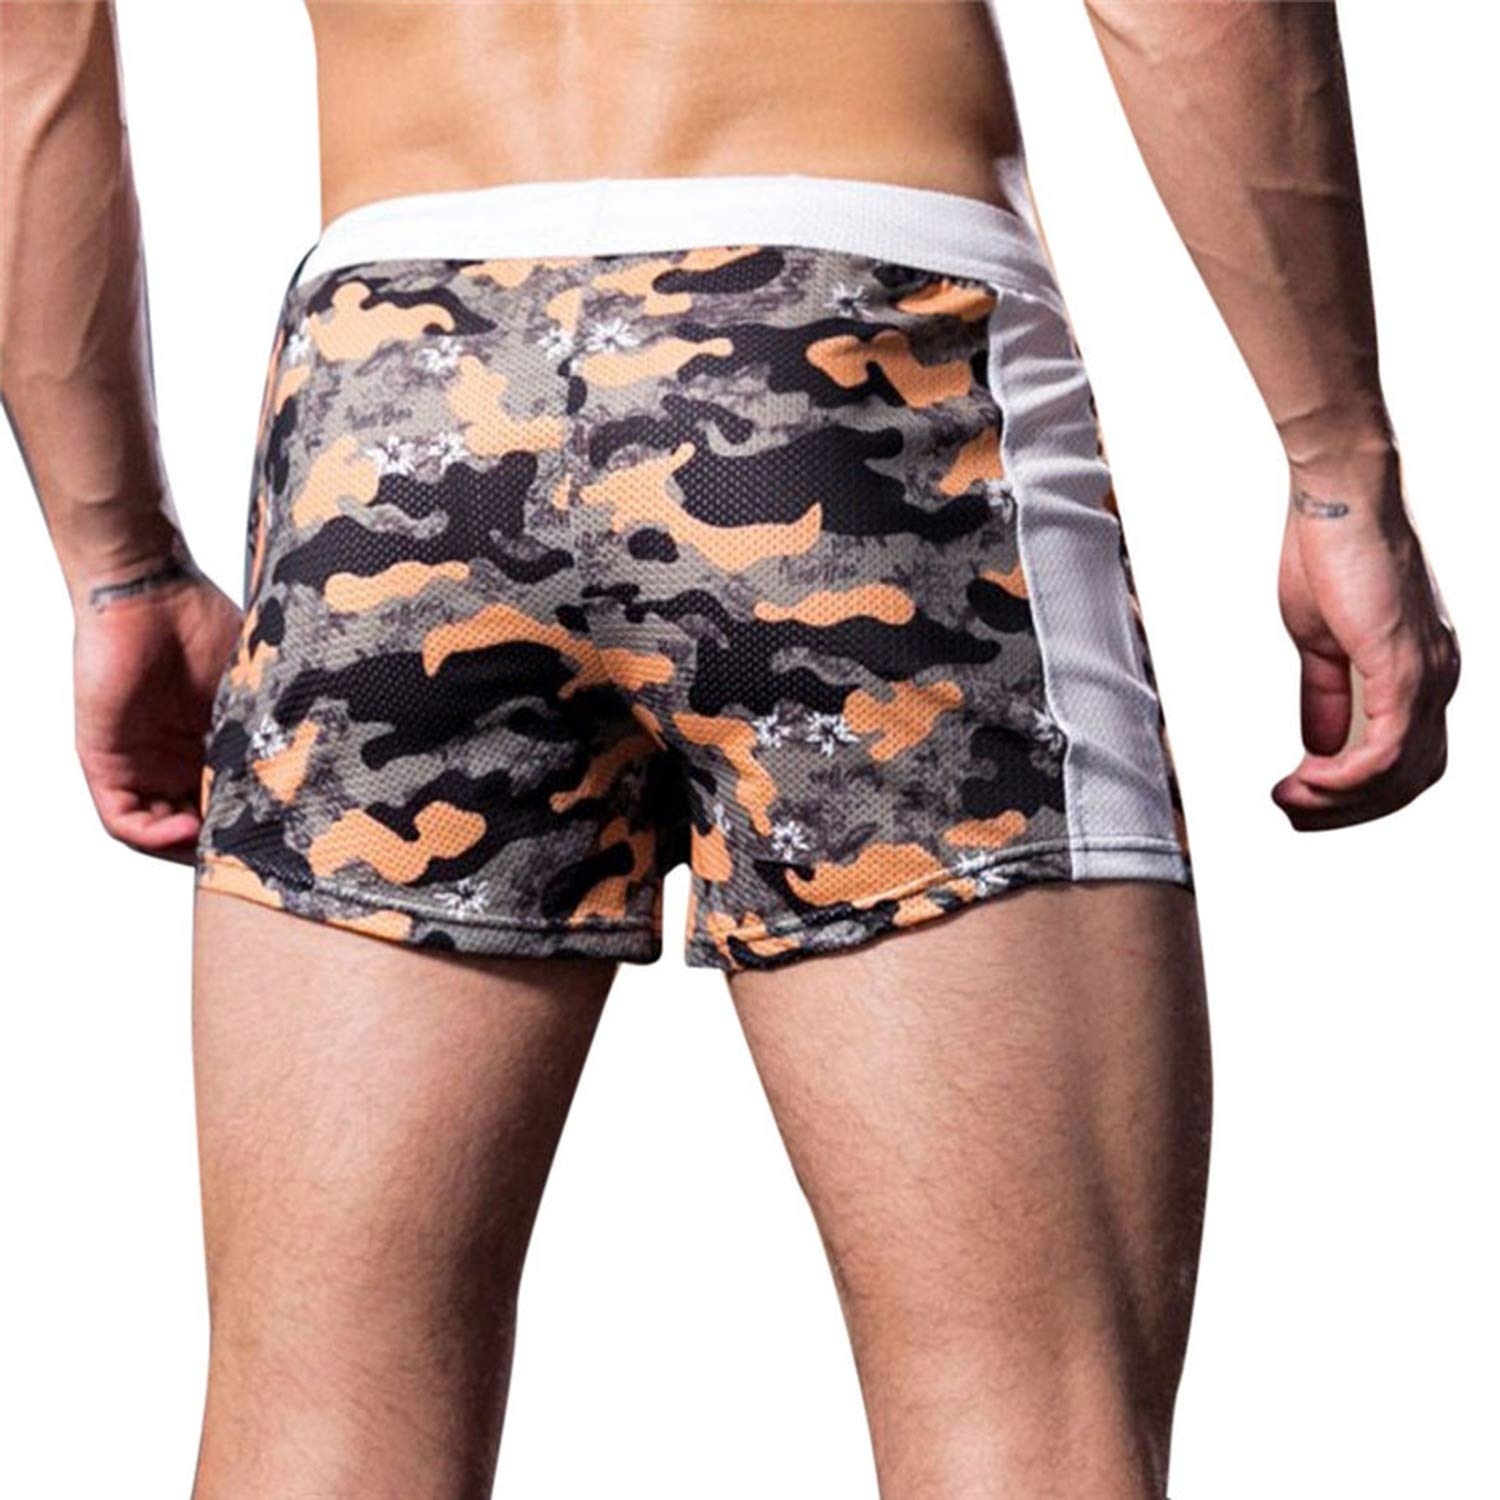 Summer Mens Shorts Leisure Camouflage Sports Shorts z0407,GN,XL,United States